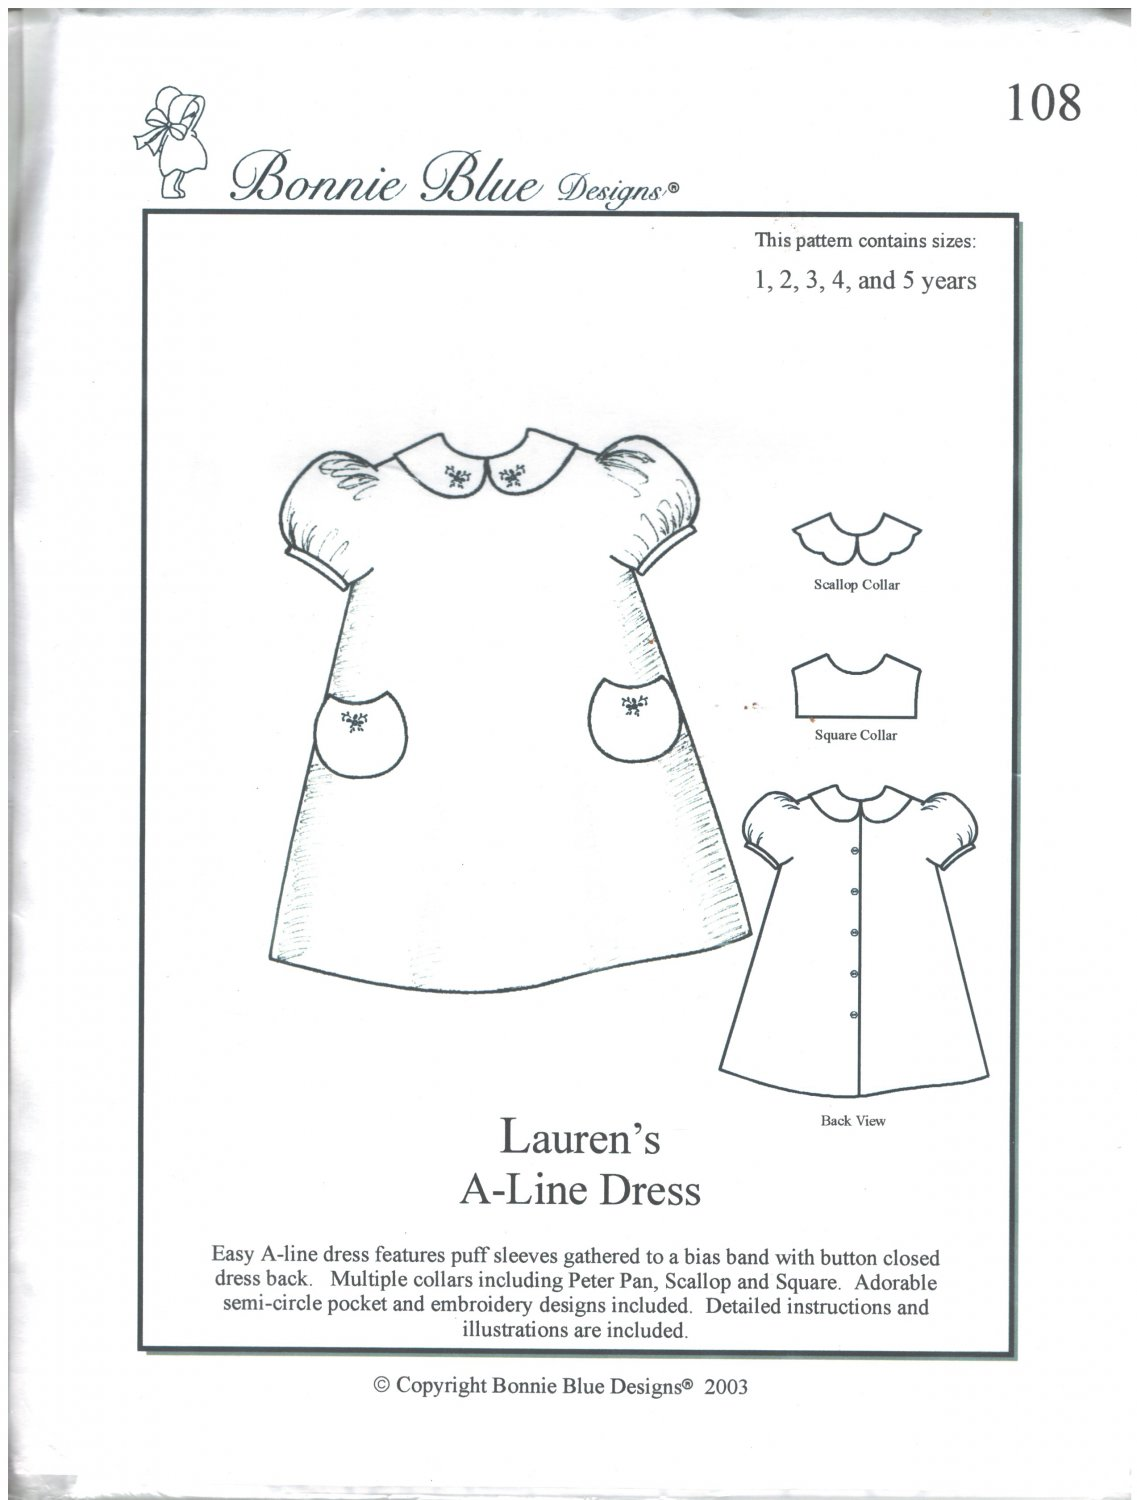 Lauren's A-Line Dress Bonnie Blue Designs 108 Sizes 1-5 years